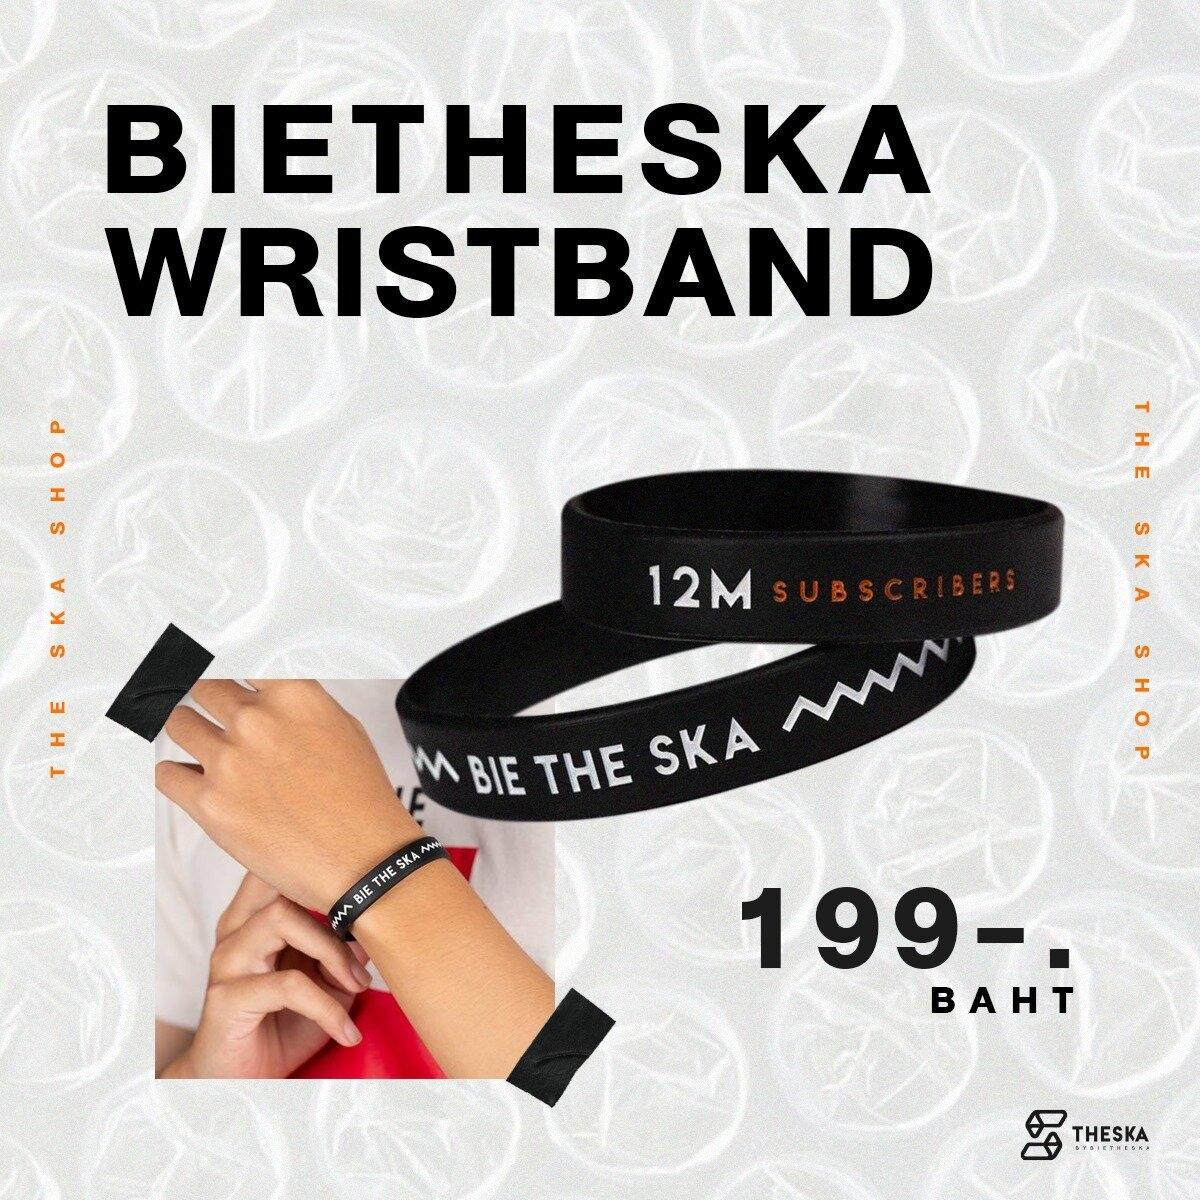 WRISTBAND 12M SUBSCRIBERS